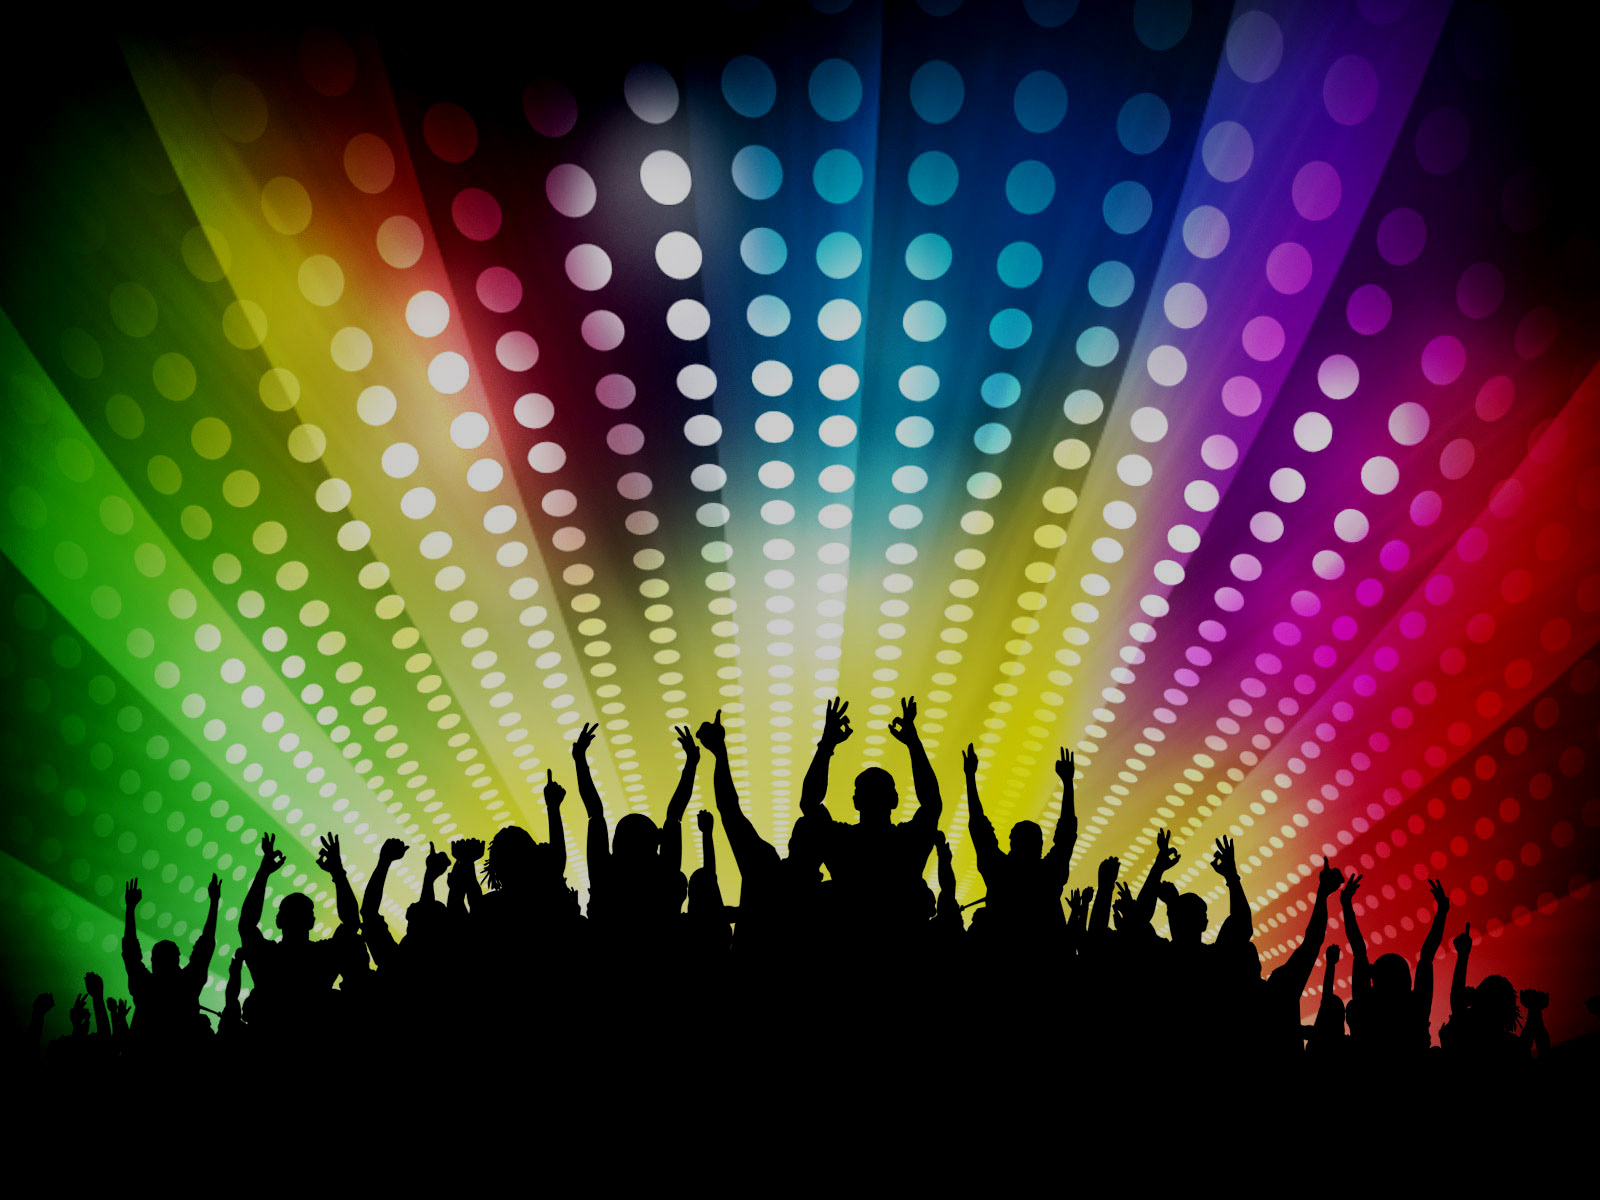 Photo Collection Disco Wallpaper HD Wallpapers Download Free Images Wallpaper [1000image.com]